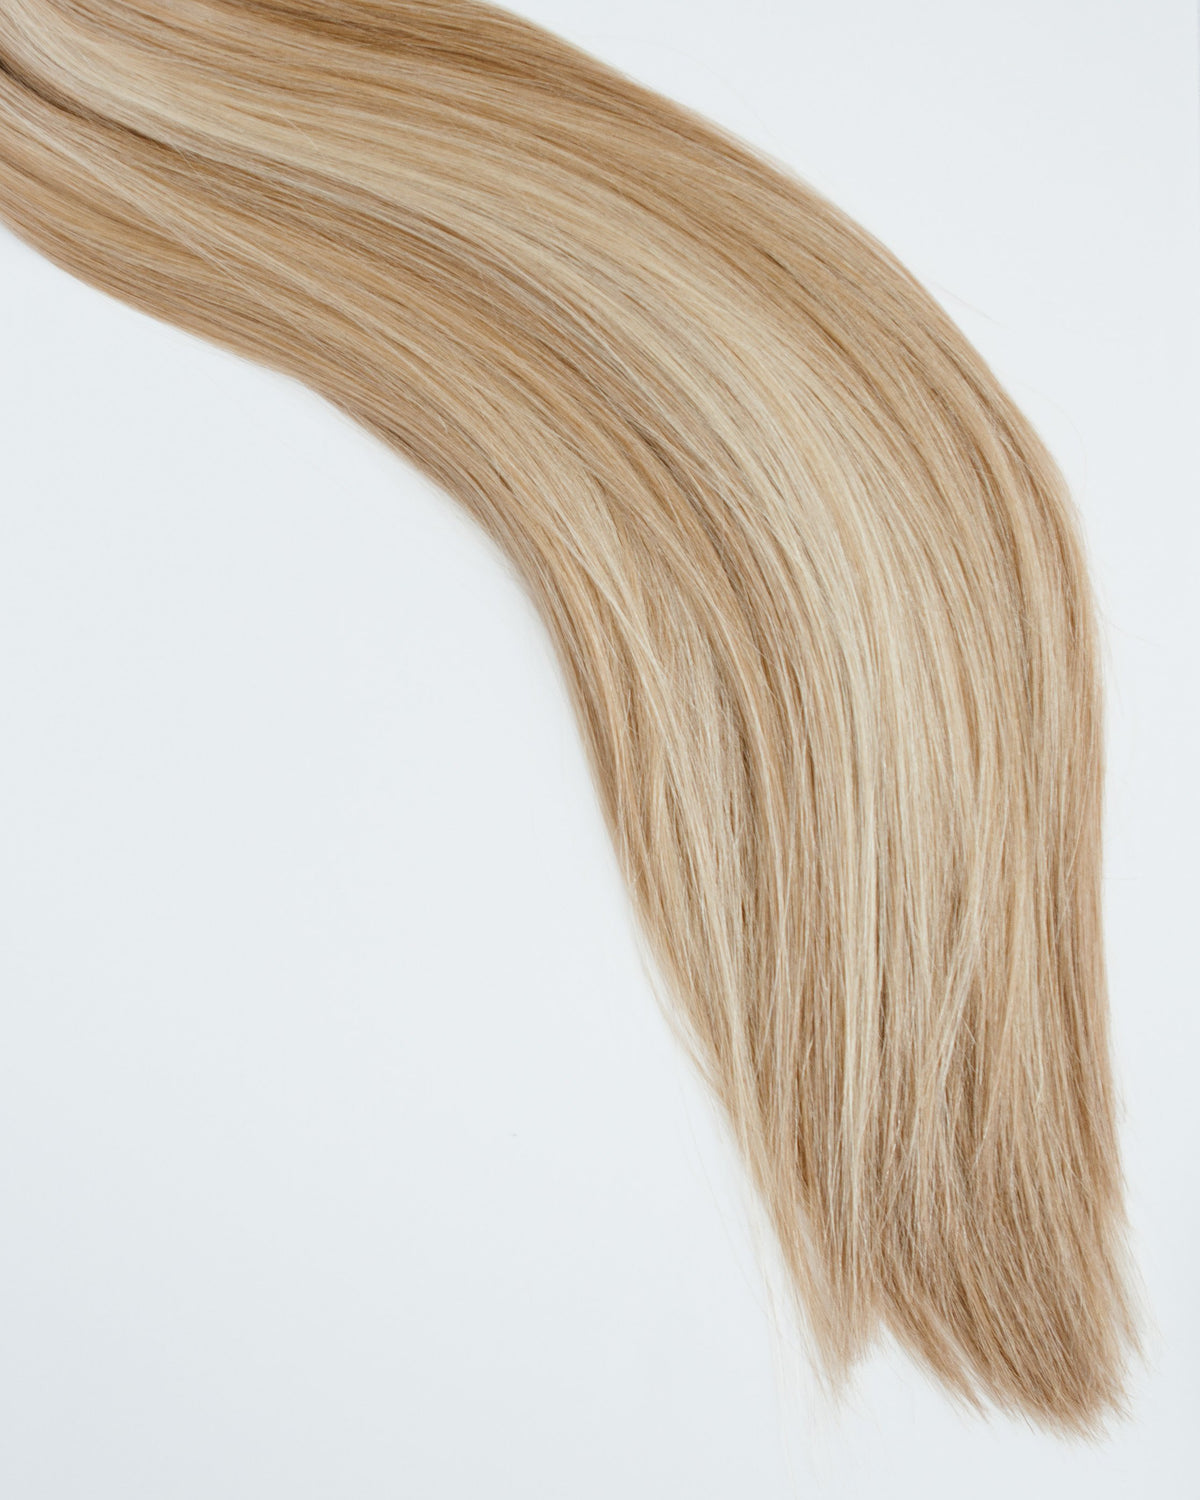 Laced Hair Tape-In Extensions Dimensional #8/60